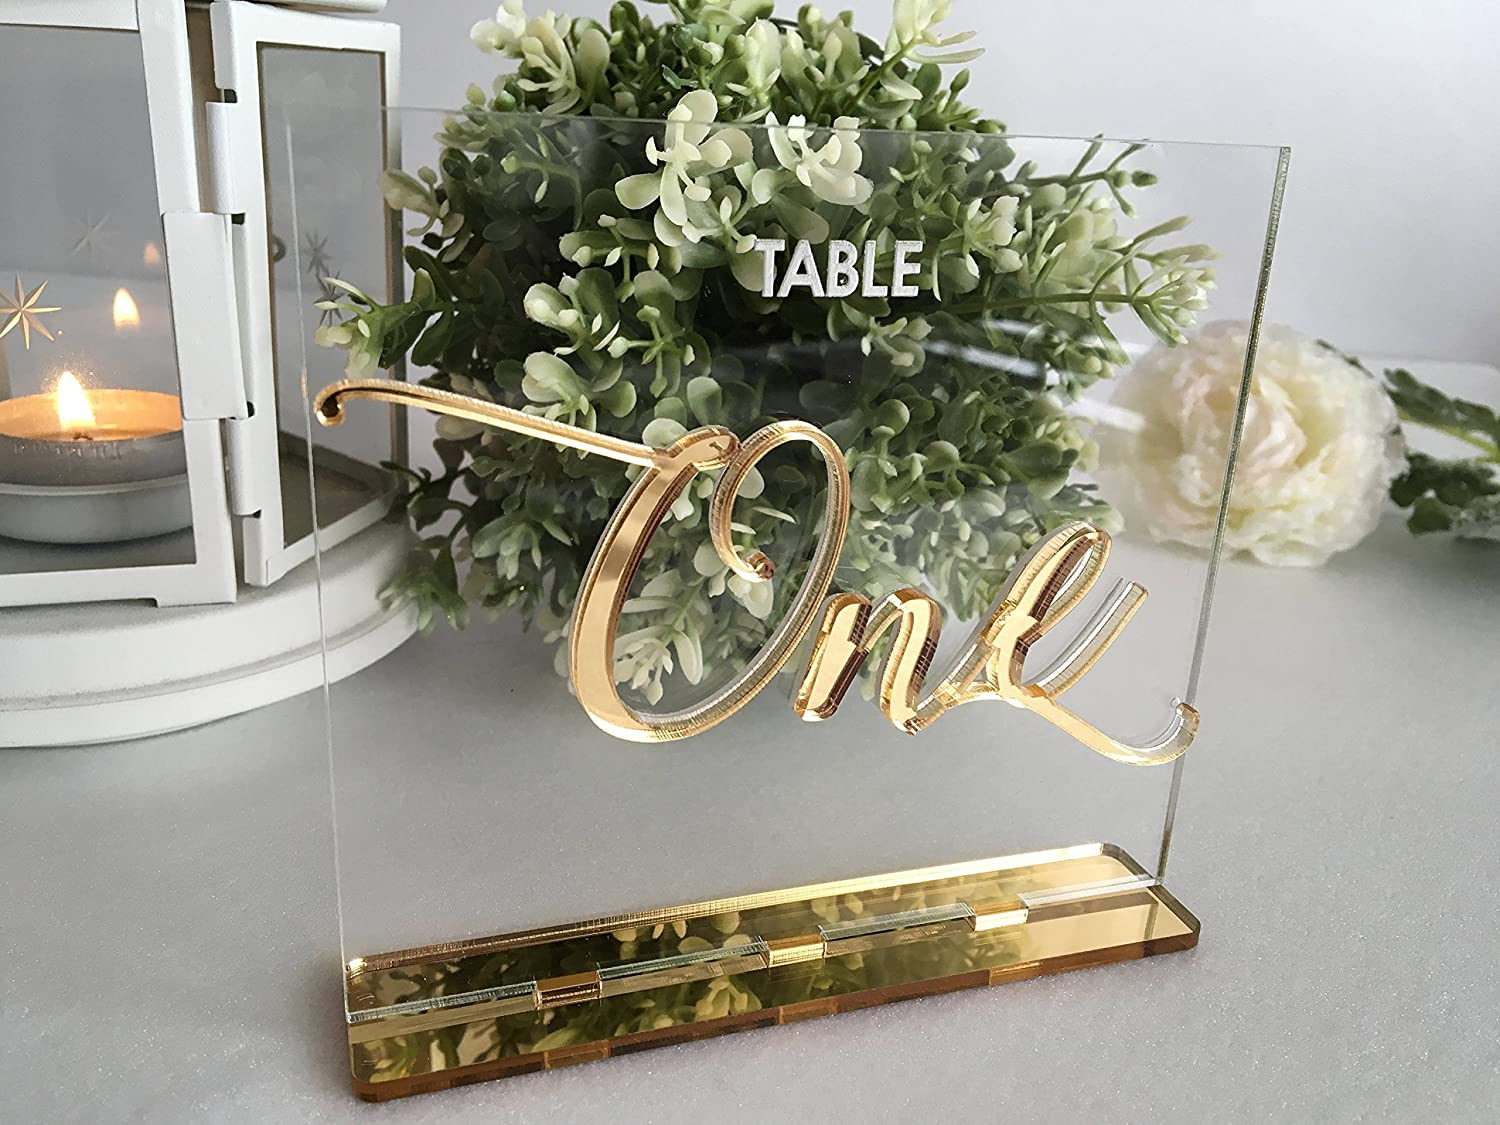 Wedding Table Numbers for Luxury Weddings Calligraphy Gold Mirror Clear Acrylic Signs Modern Centerpieces Decorations Number Holders Engraved Tags Party Event Centerpiece Decor Standing Bridal Shower